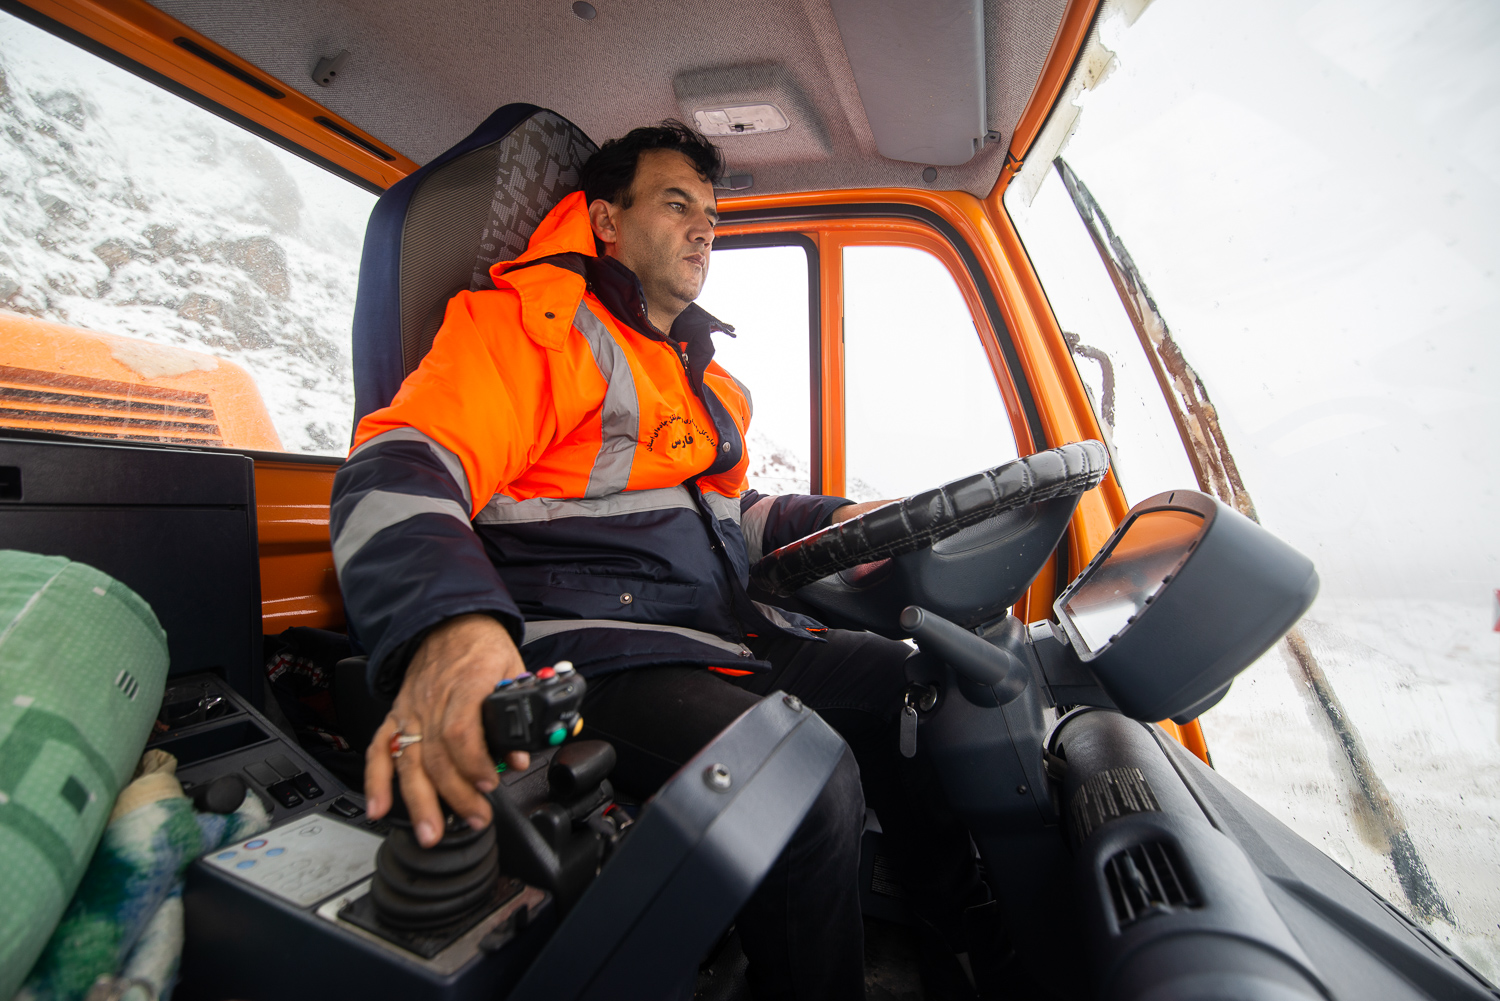 Hamid has been in this hard job for the last 18 years!